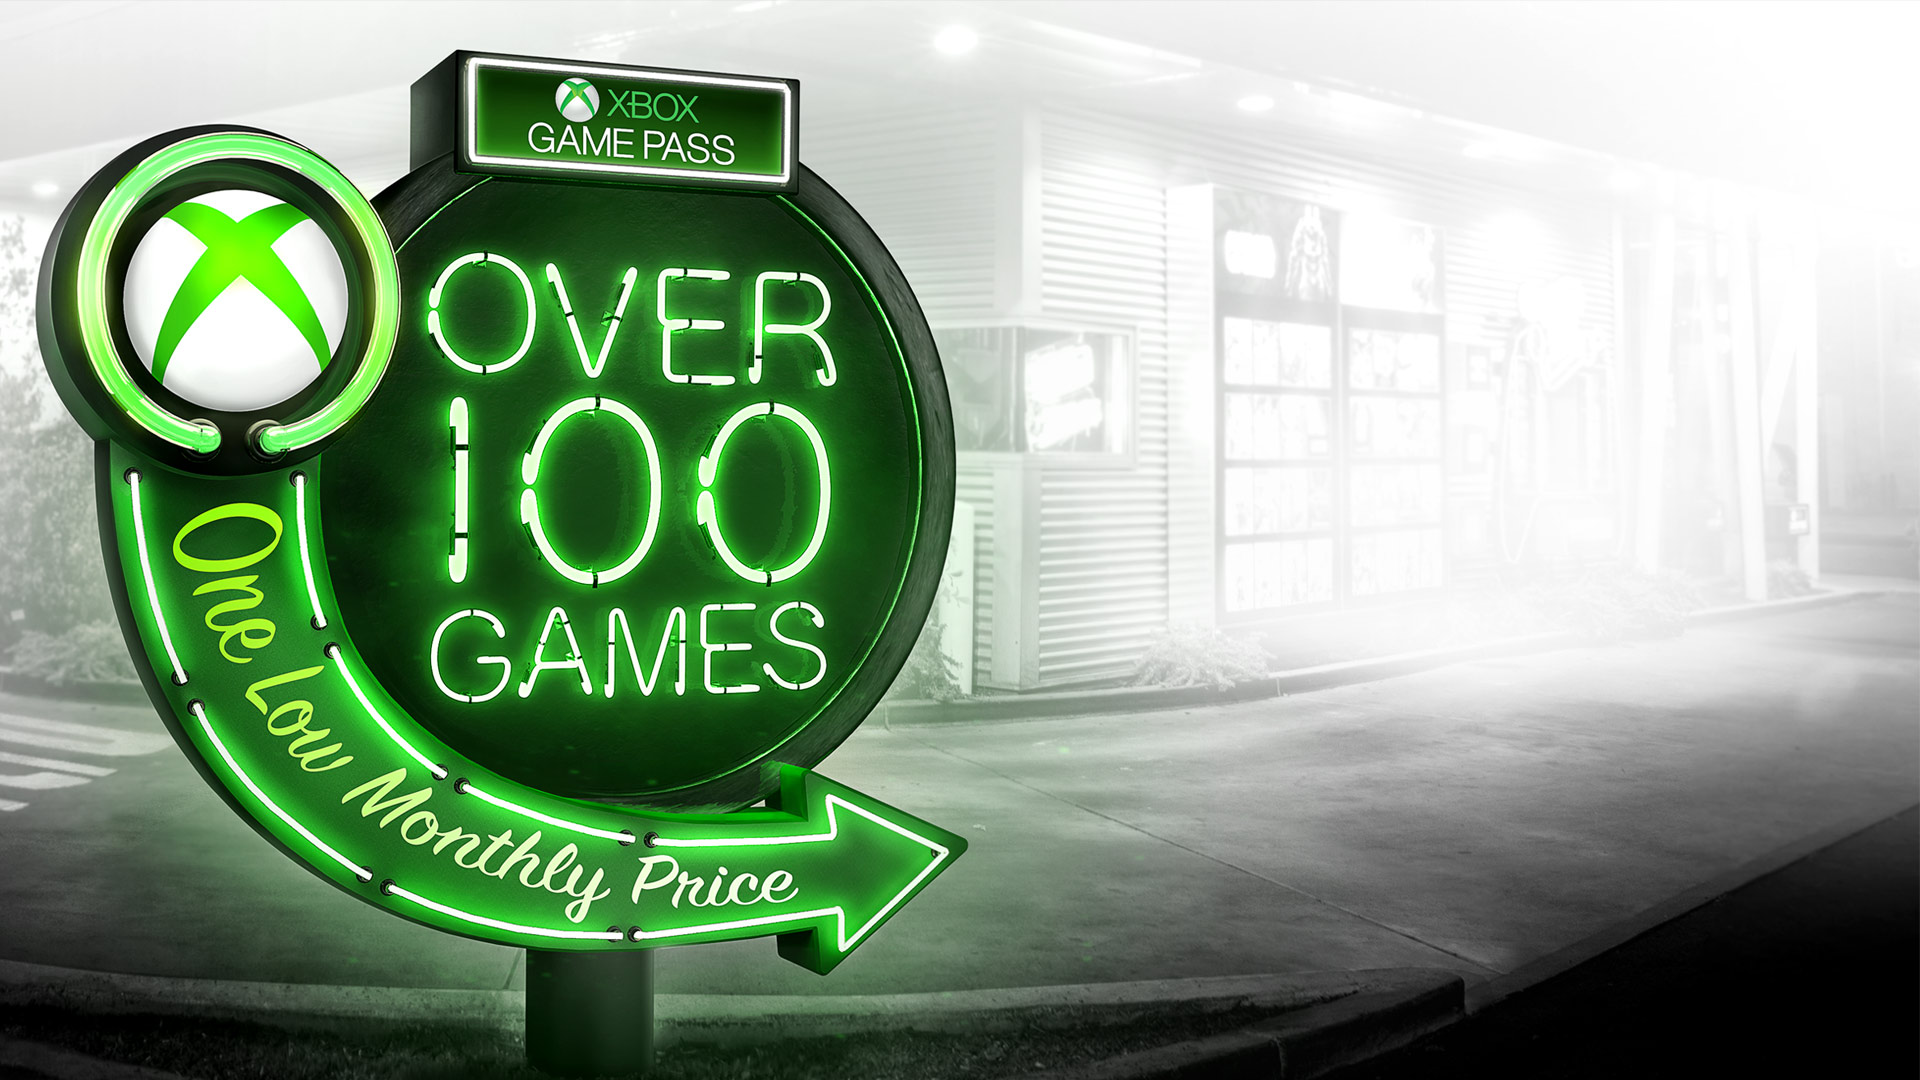 Xbox Games Pass subscribers get PC titles via Xbox Play Anywhere